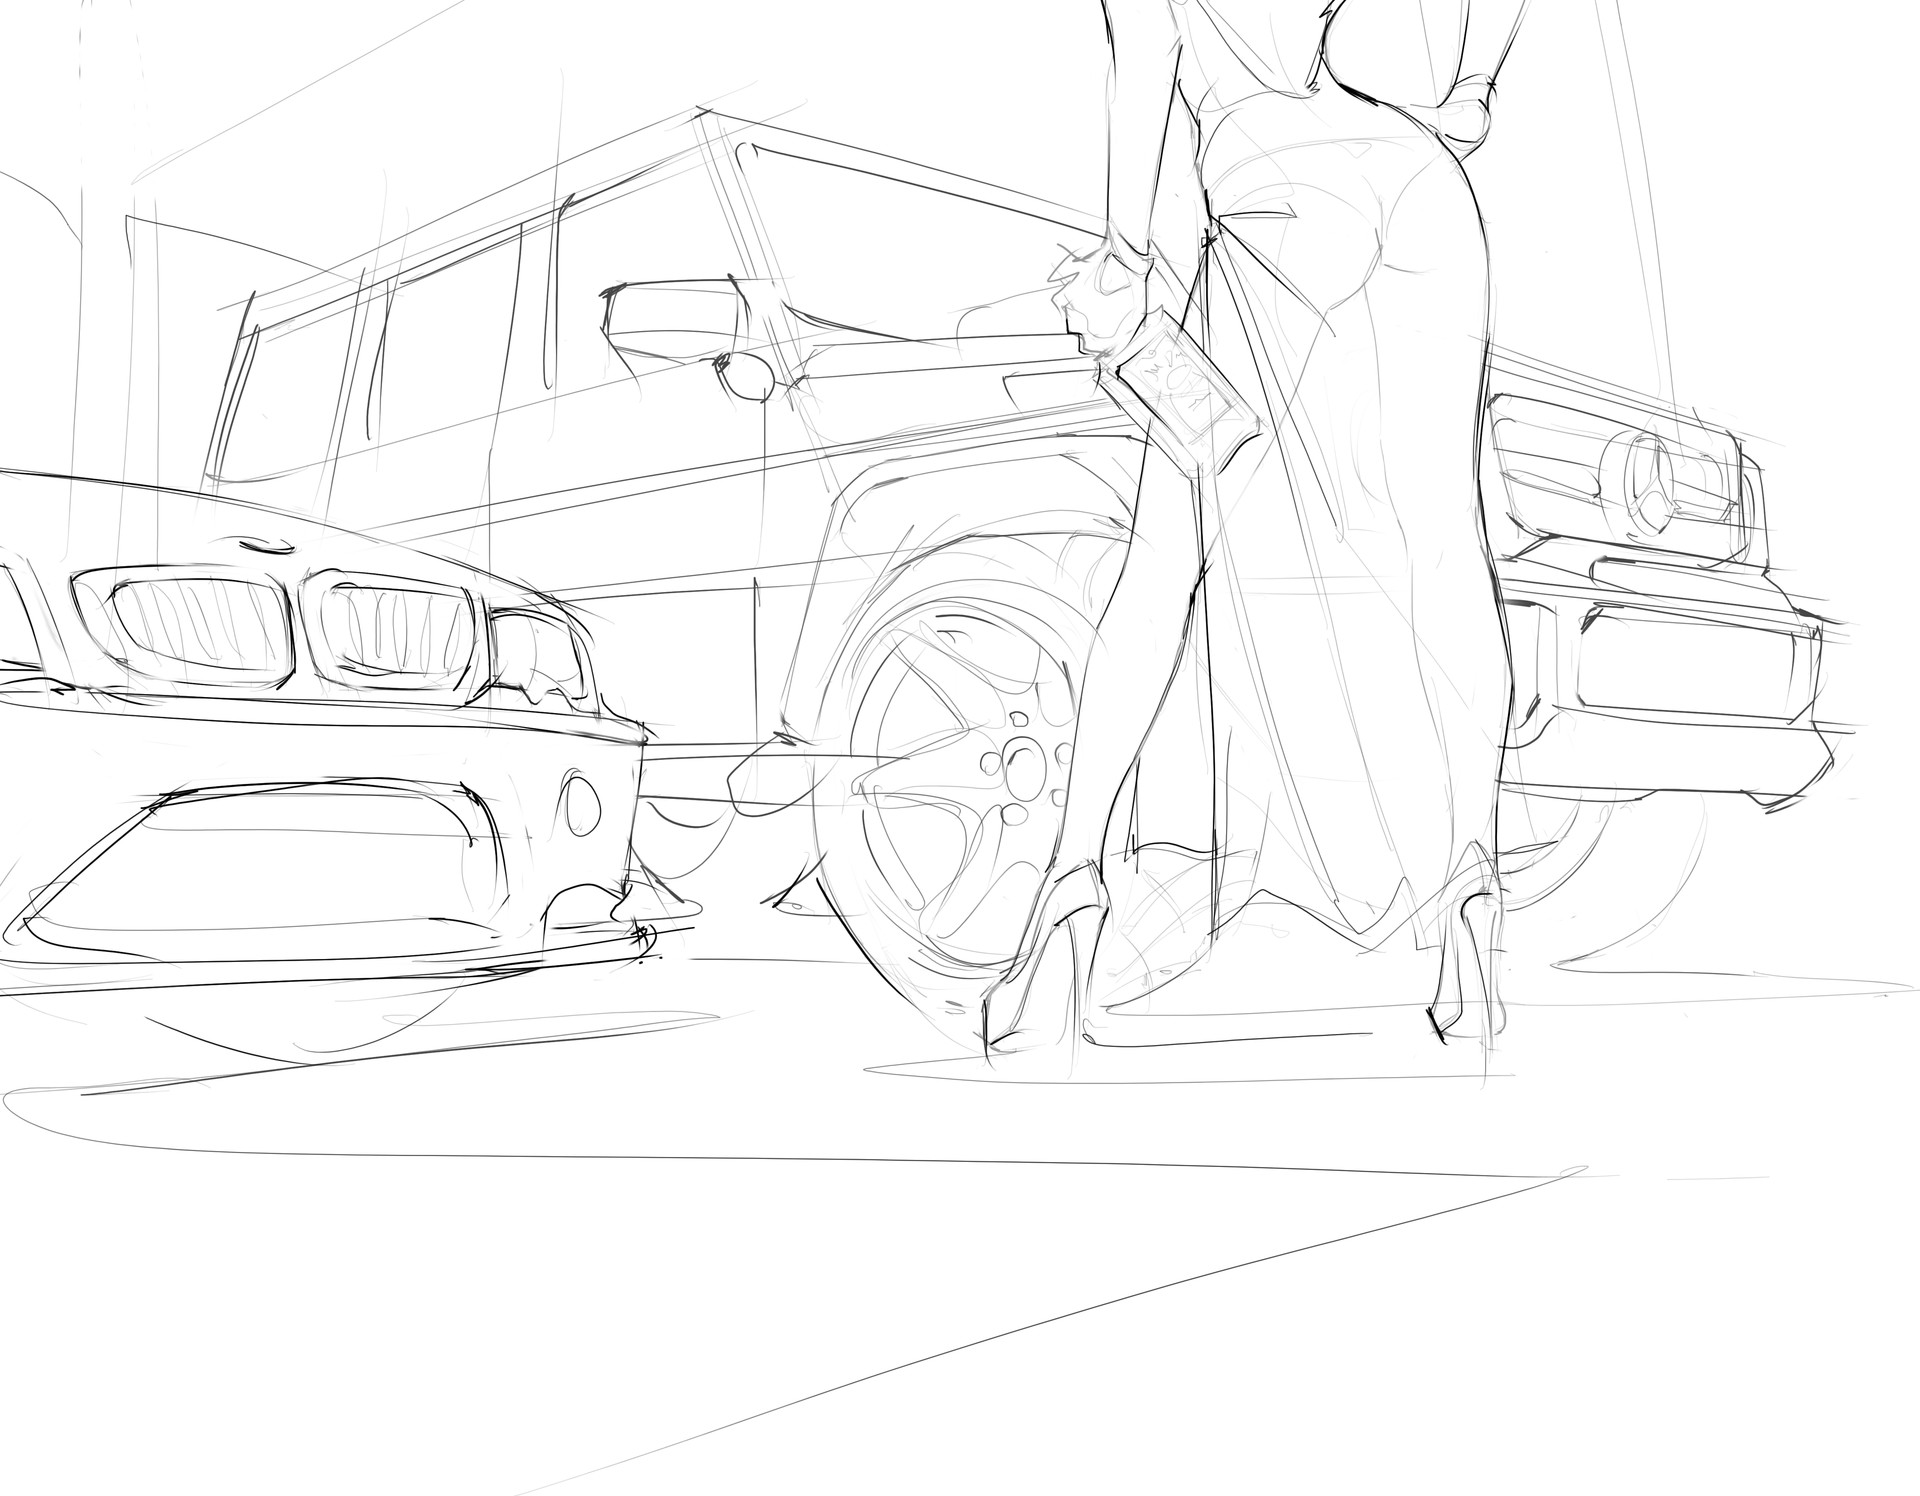 Awesome Drawing Of Accident Scene Sketch - Diagram Wiring Ideas ...